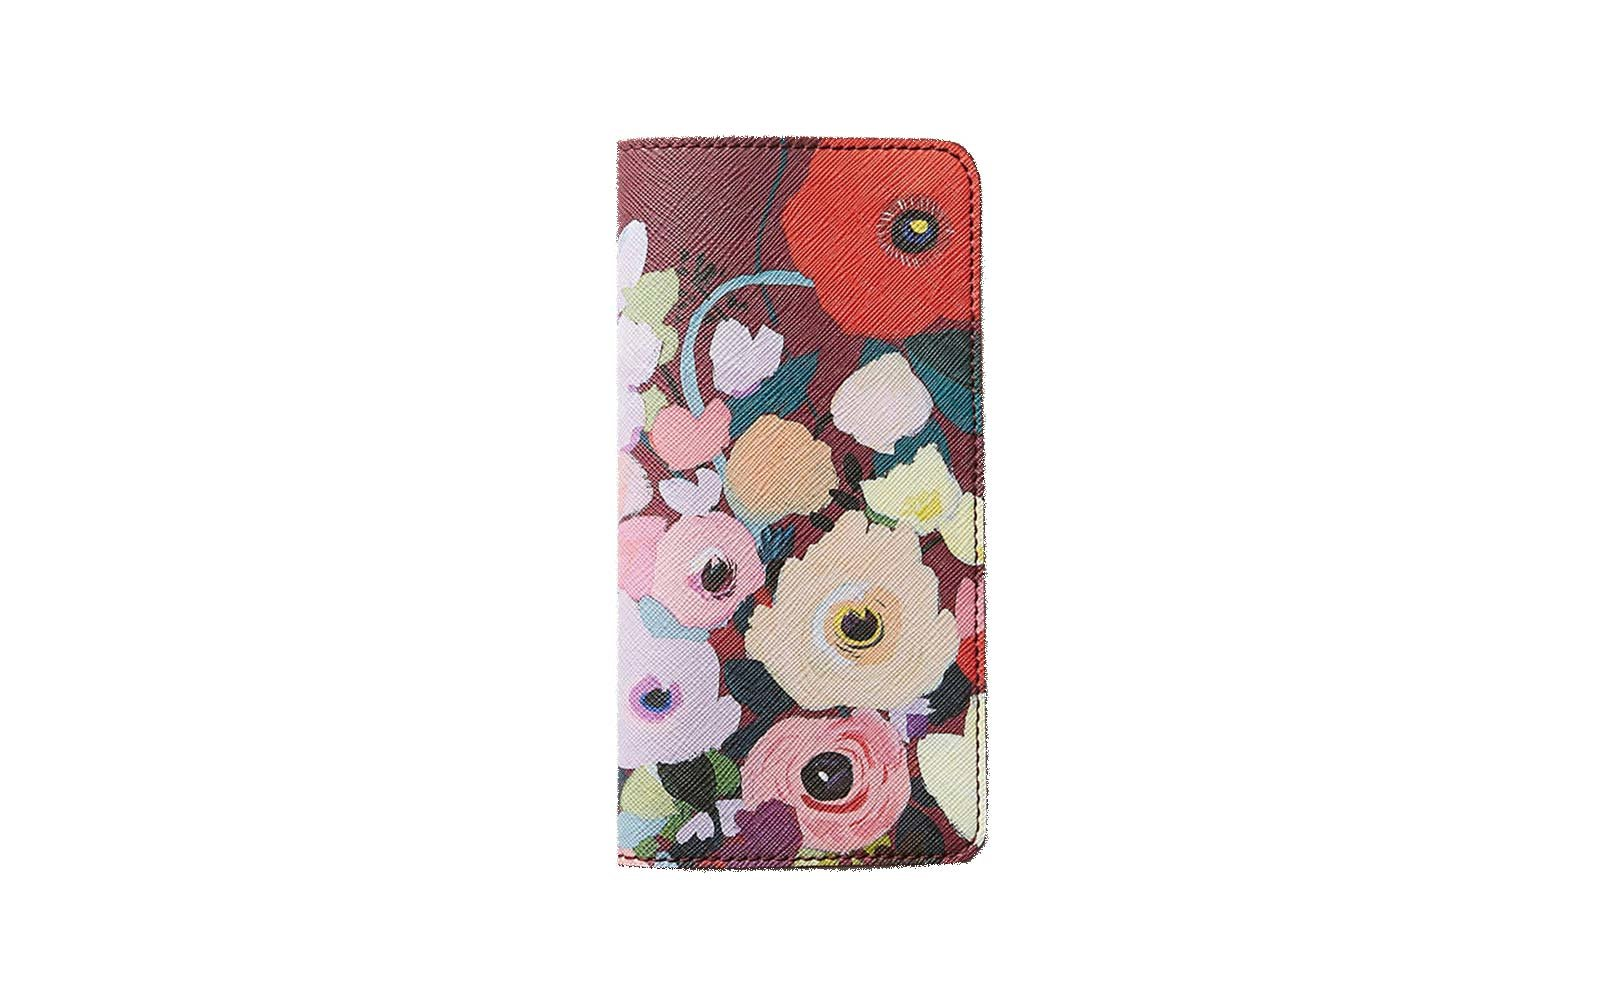 KT Snails floral travel wallet